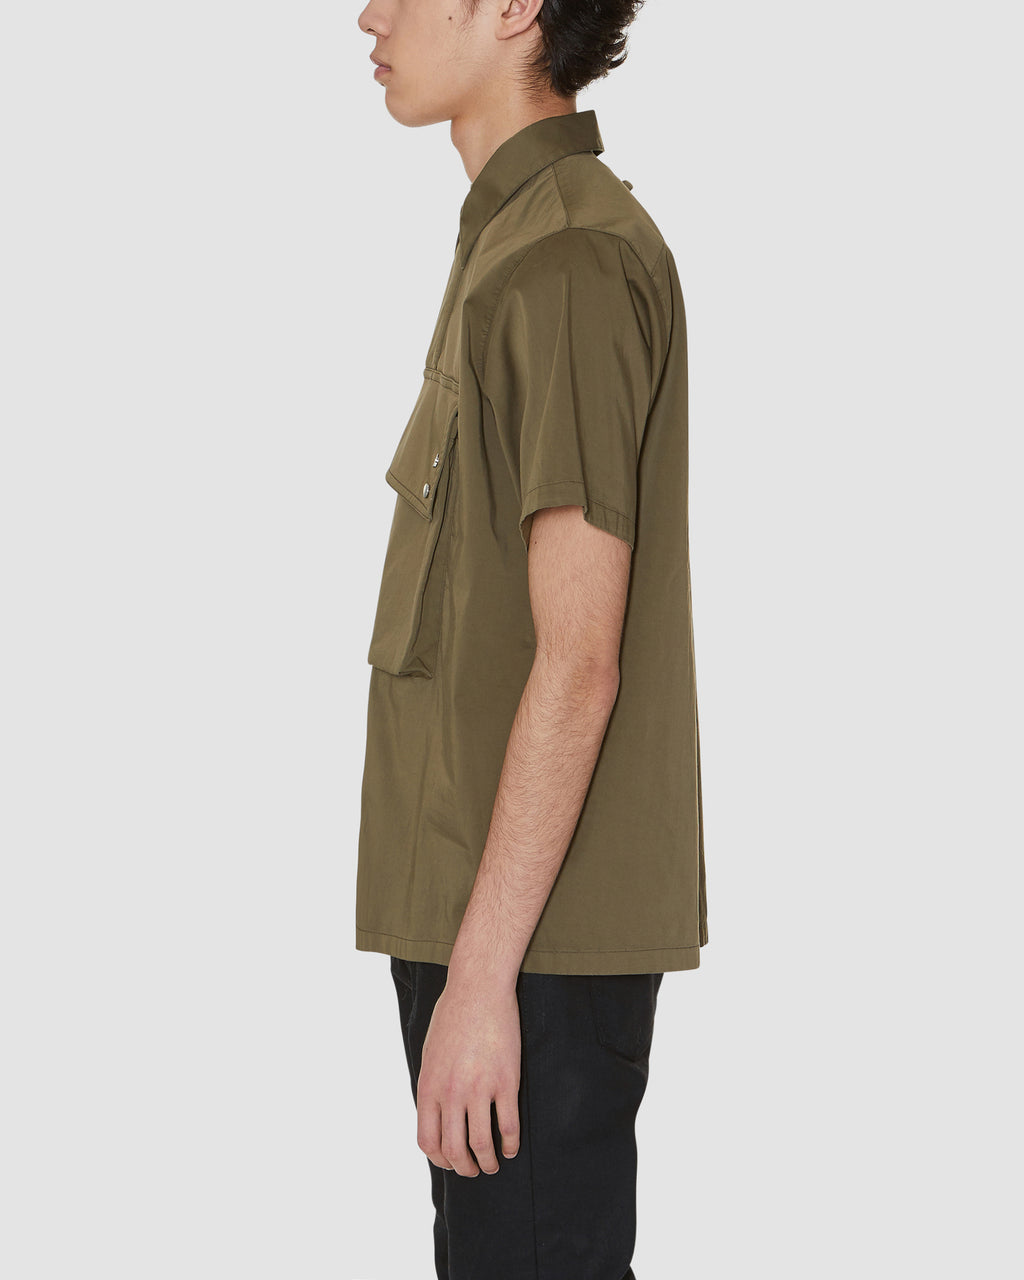 SCOUT SHORT SLEEVE SHIRT